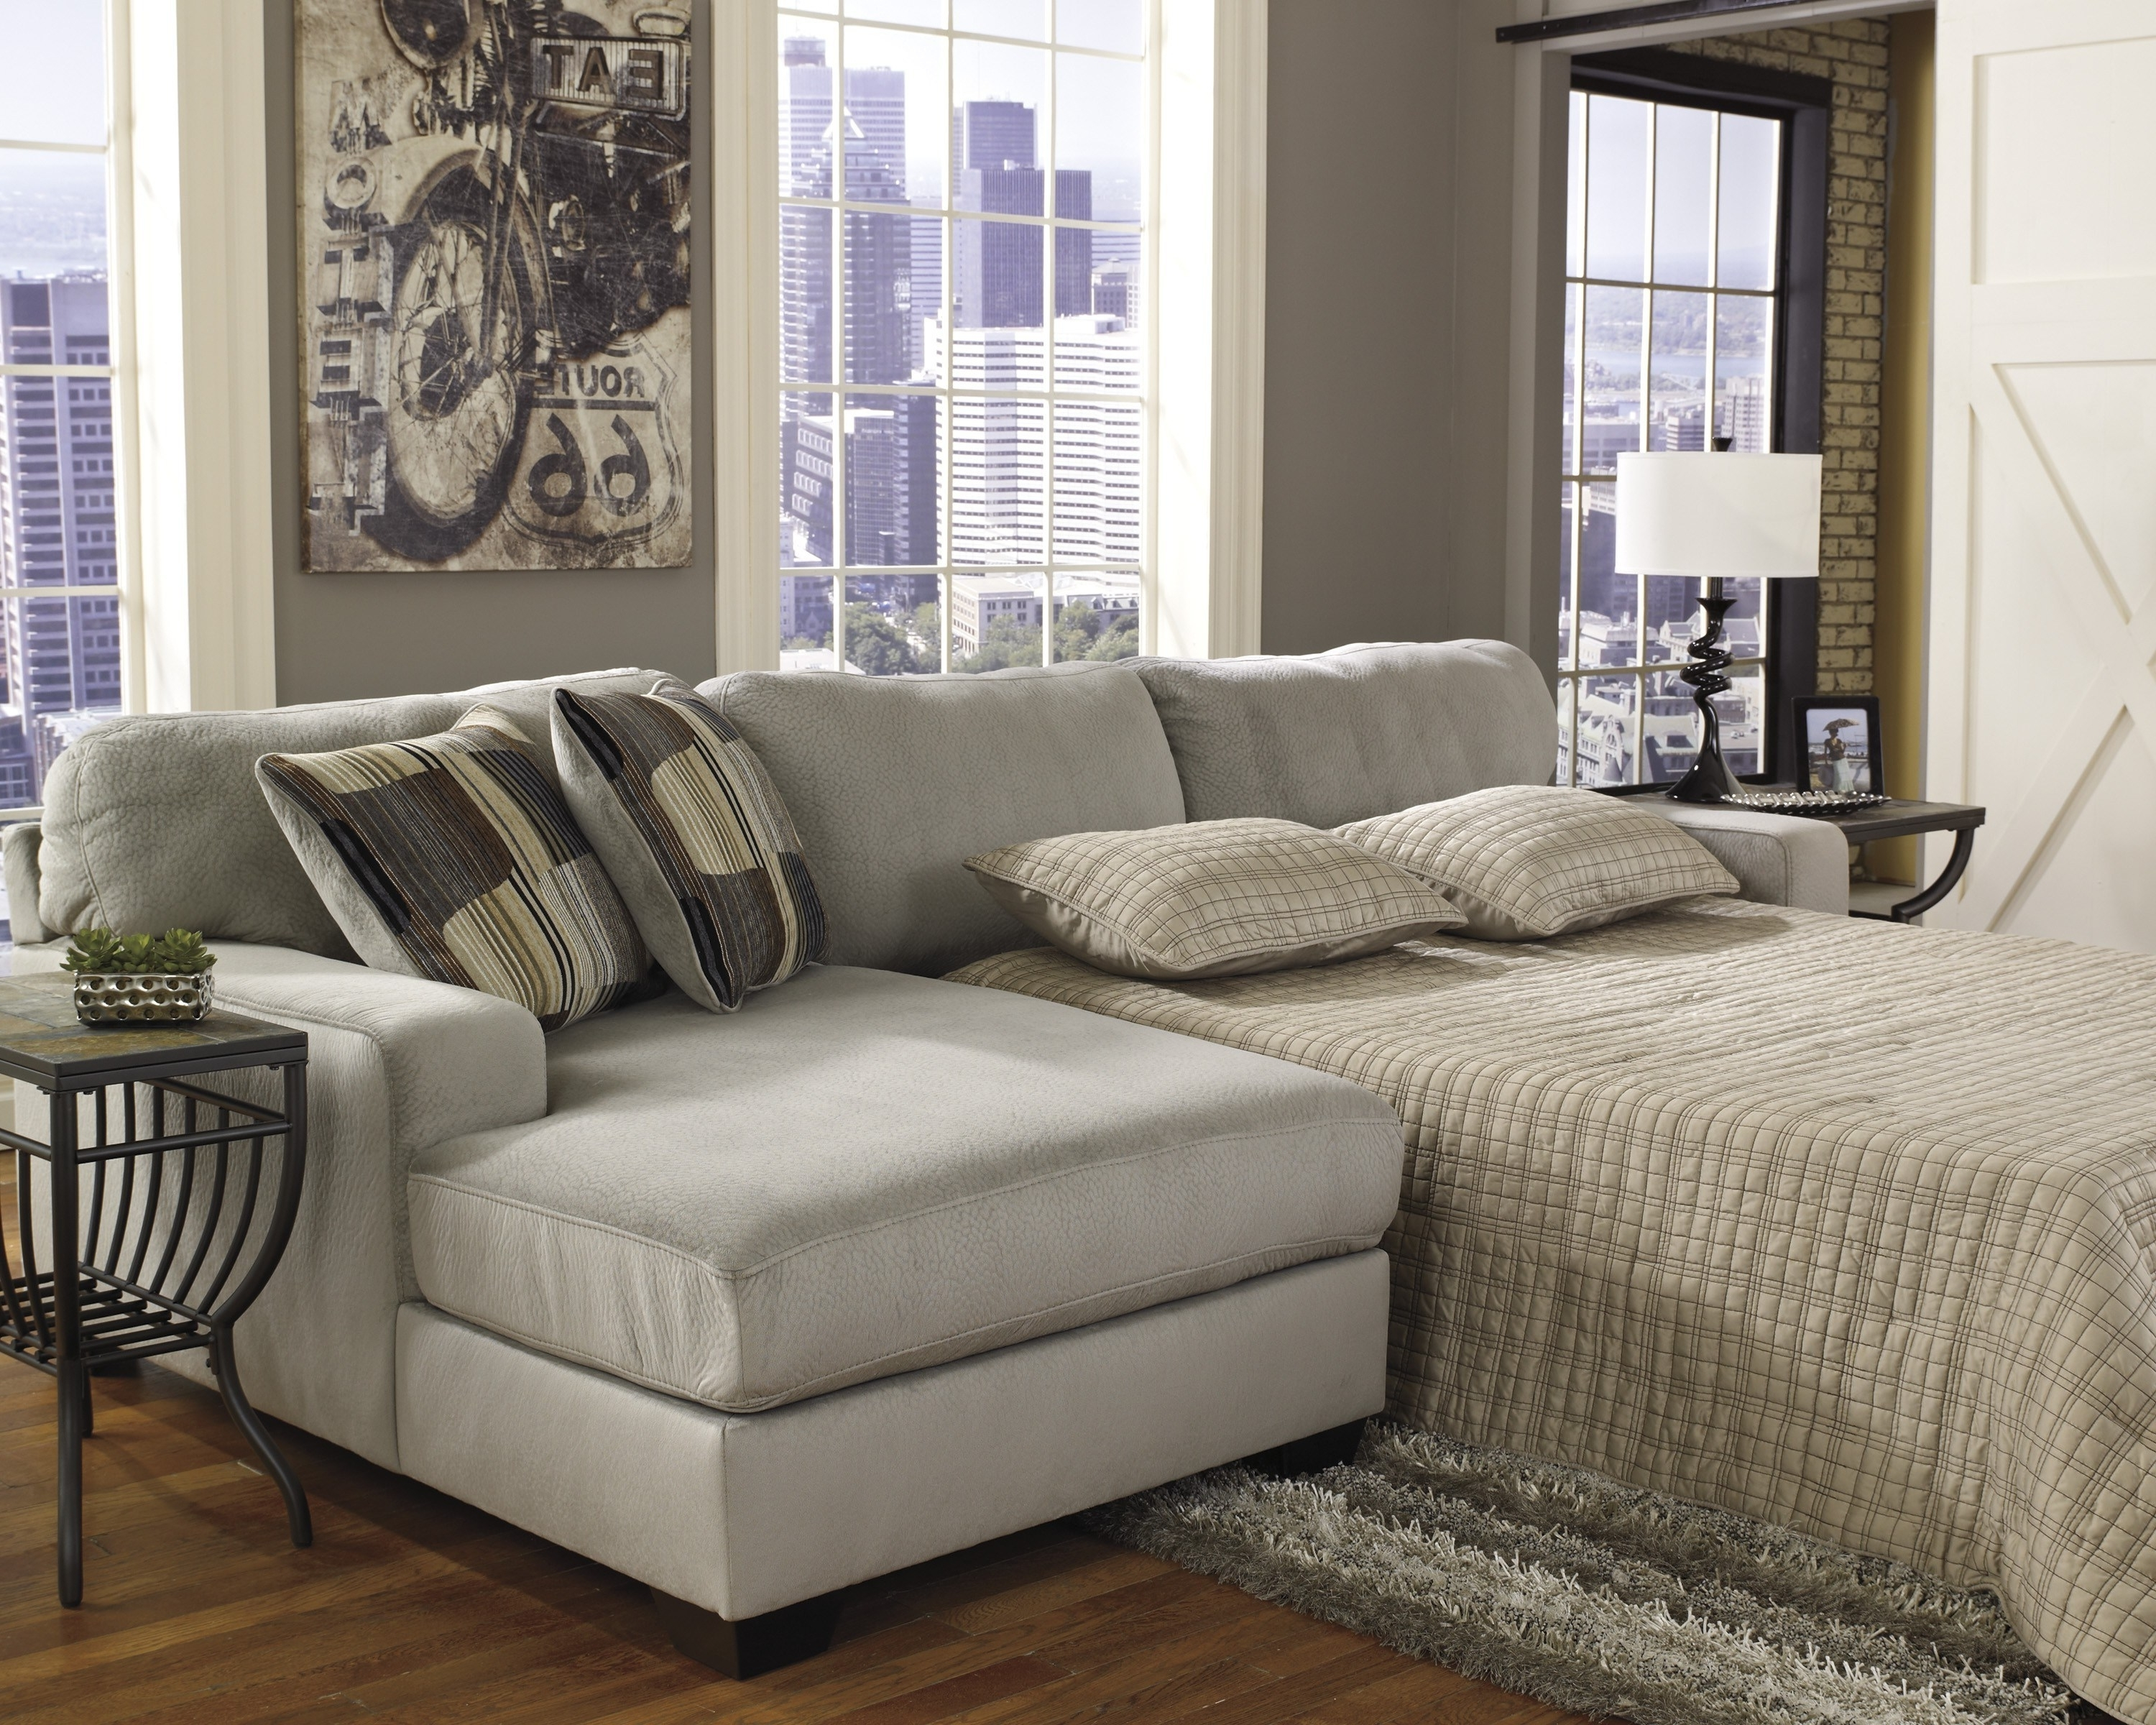 Outstanding Reclining Loveseat Set Along With Black Lear Tufted Pertaining To Favorite Houston Tx Sectional Sofas (View 9 of 15)